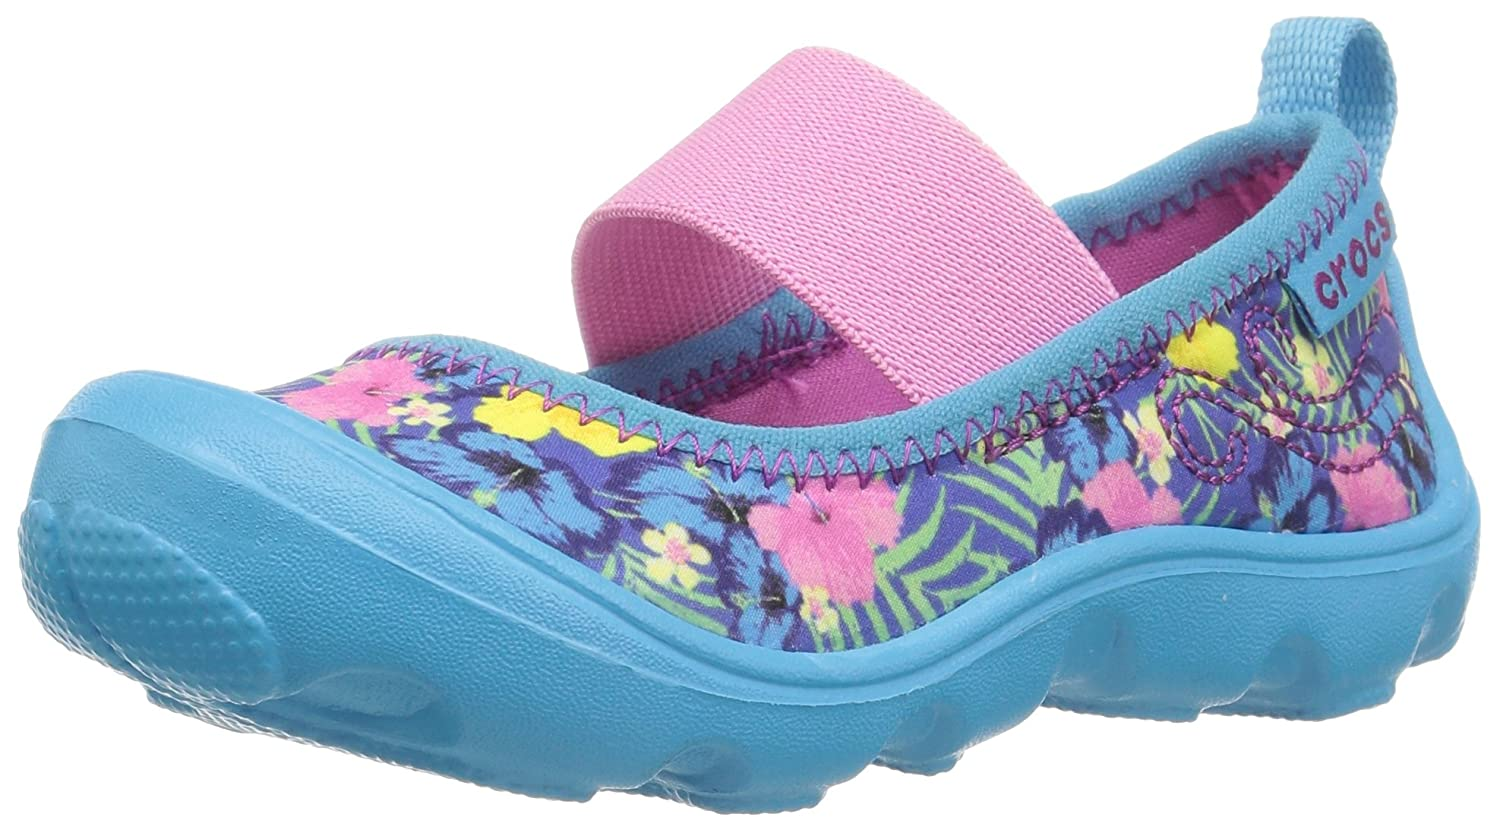 2f24b2a20cf5a Crocs Kids' Duet Busy Day MJ Graphic PS Mary Jane